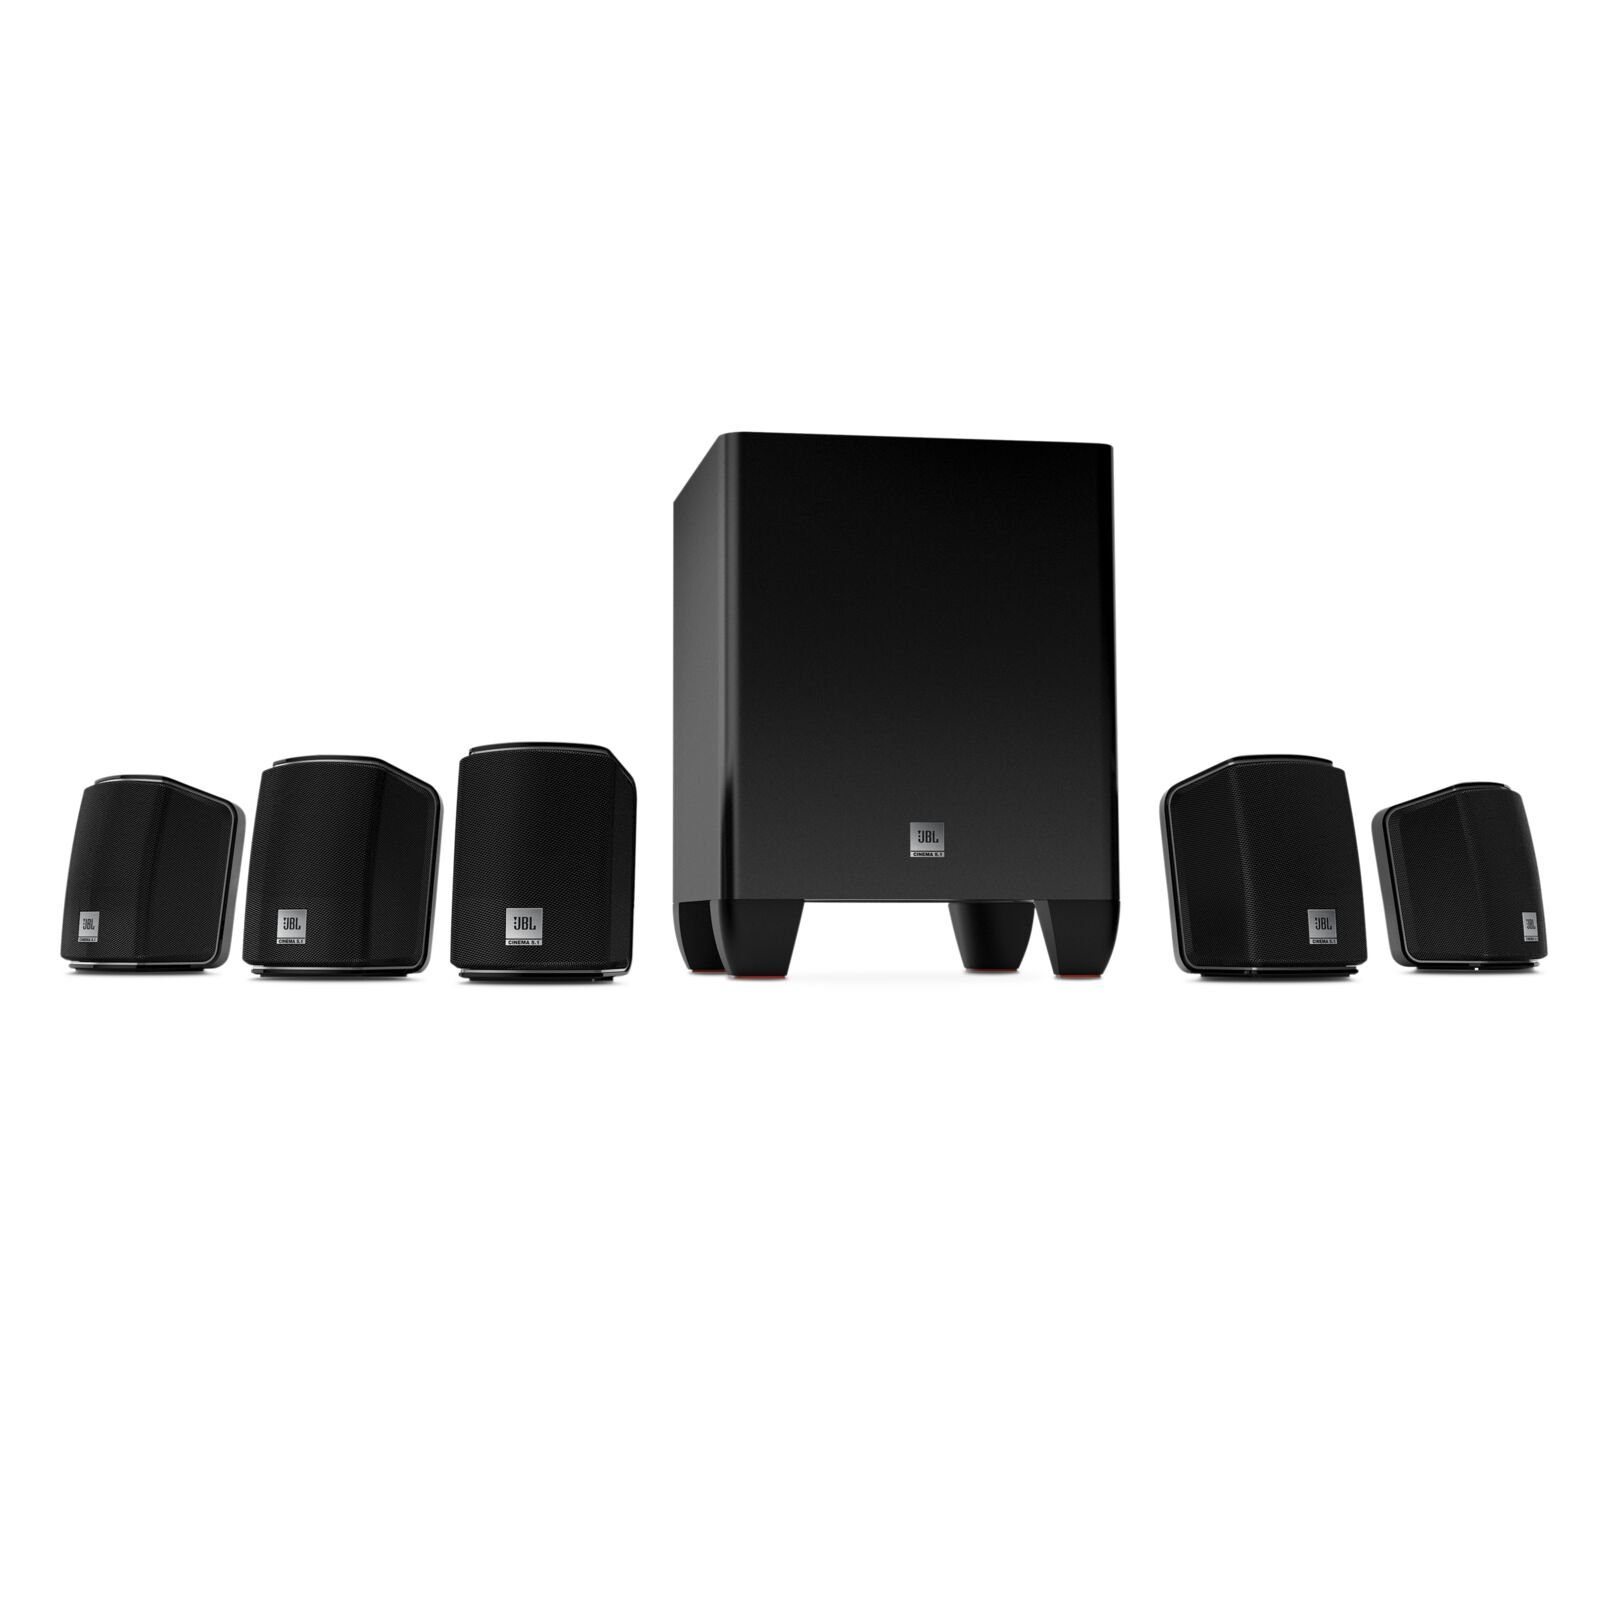 jbl cinema 510 5 1 home theater speaker system with 5 satellites 1 subwoofer ebay. Black Bedroom Furniture Sets. Home Design Ideas